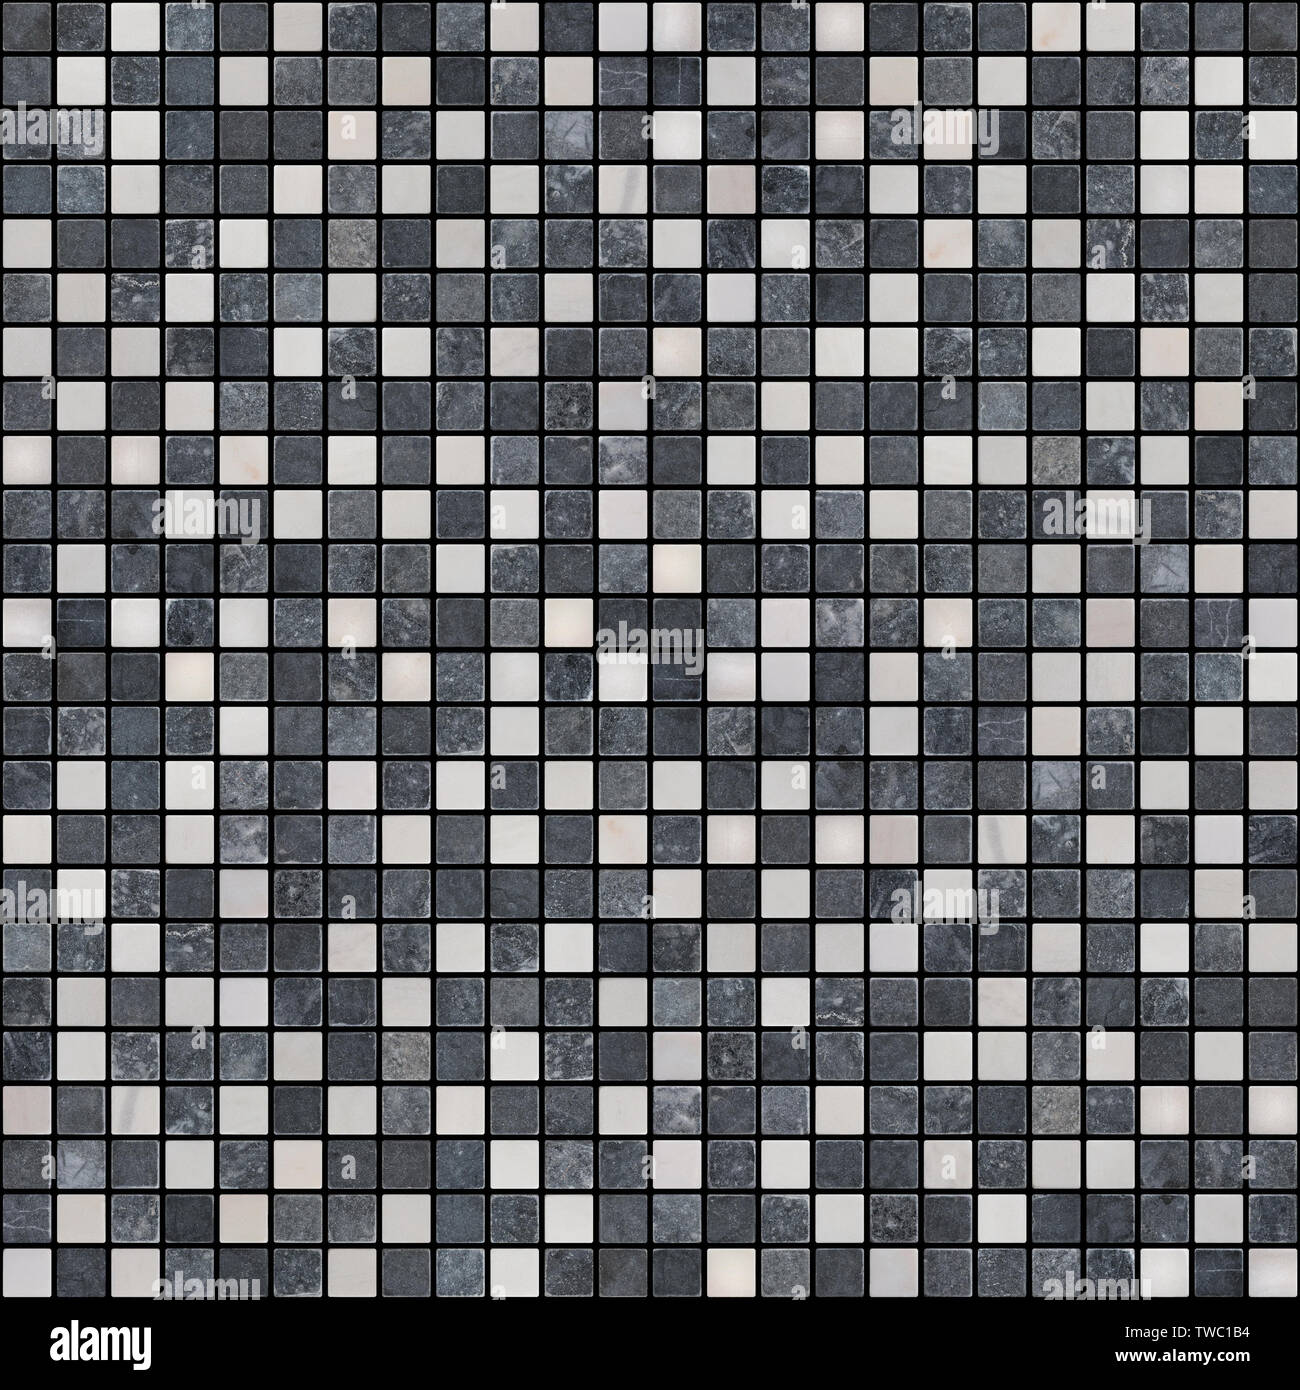 https www alamy com a small square tile of black and white color is laid out in geometric order background or texture image256576072 html